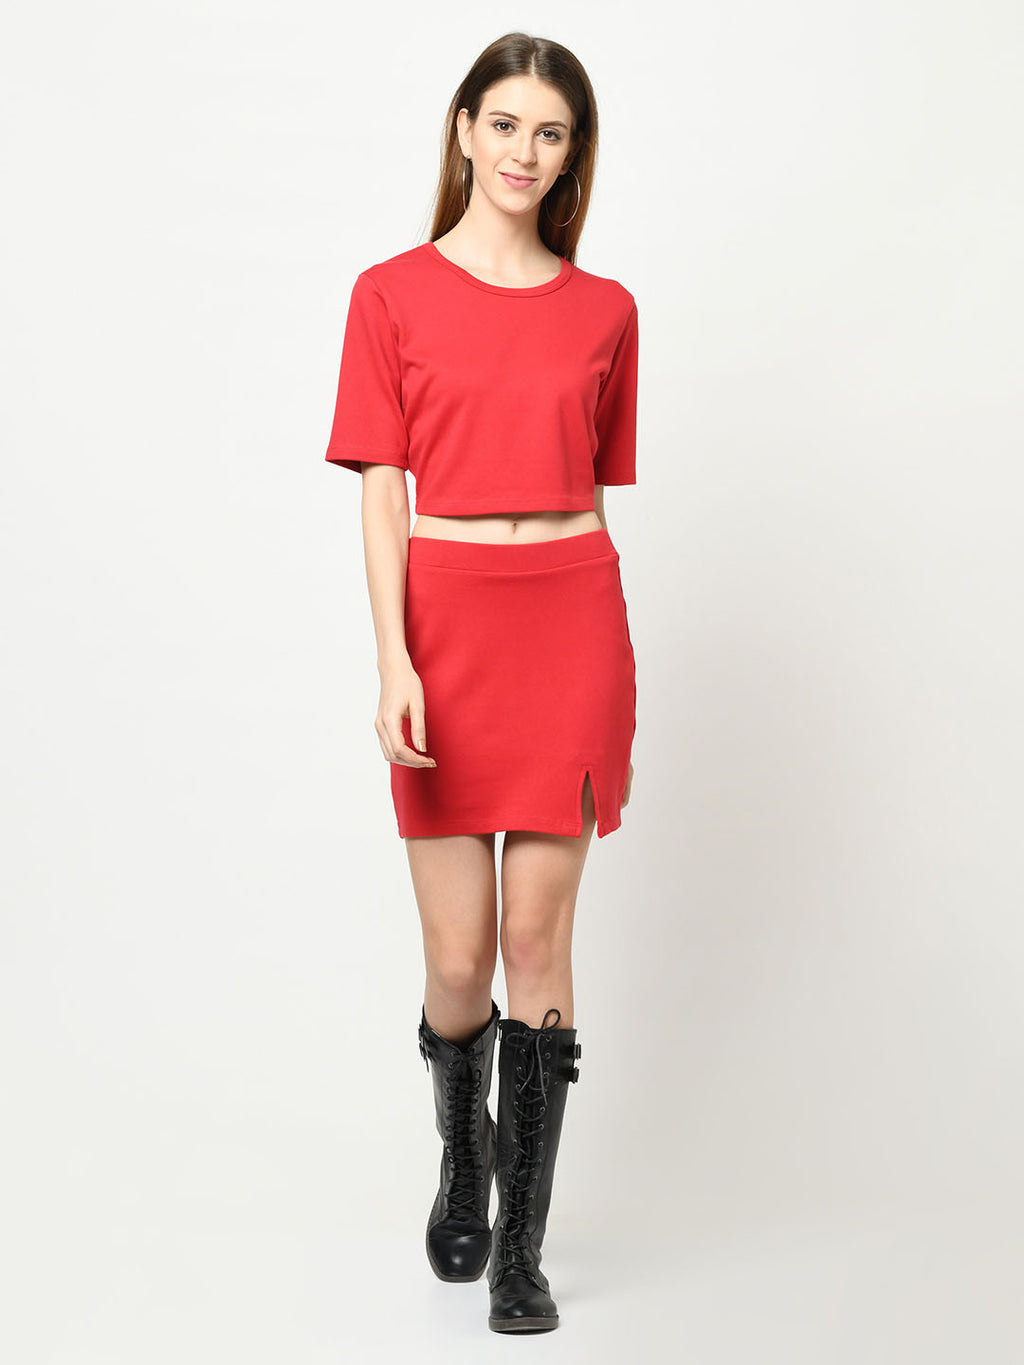 Imperial Red Top And Skirt Set - Avsoy